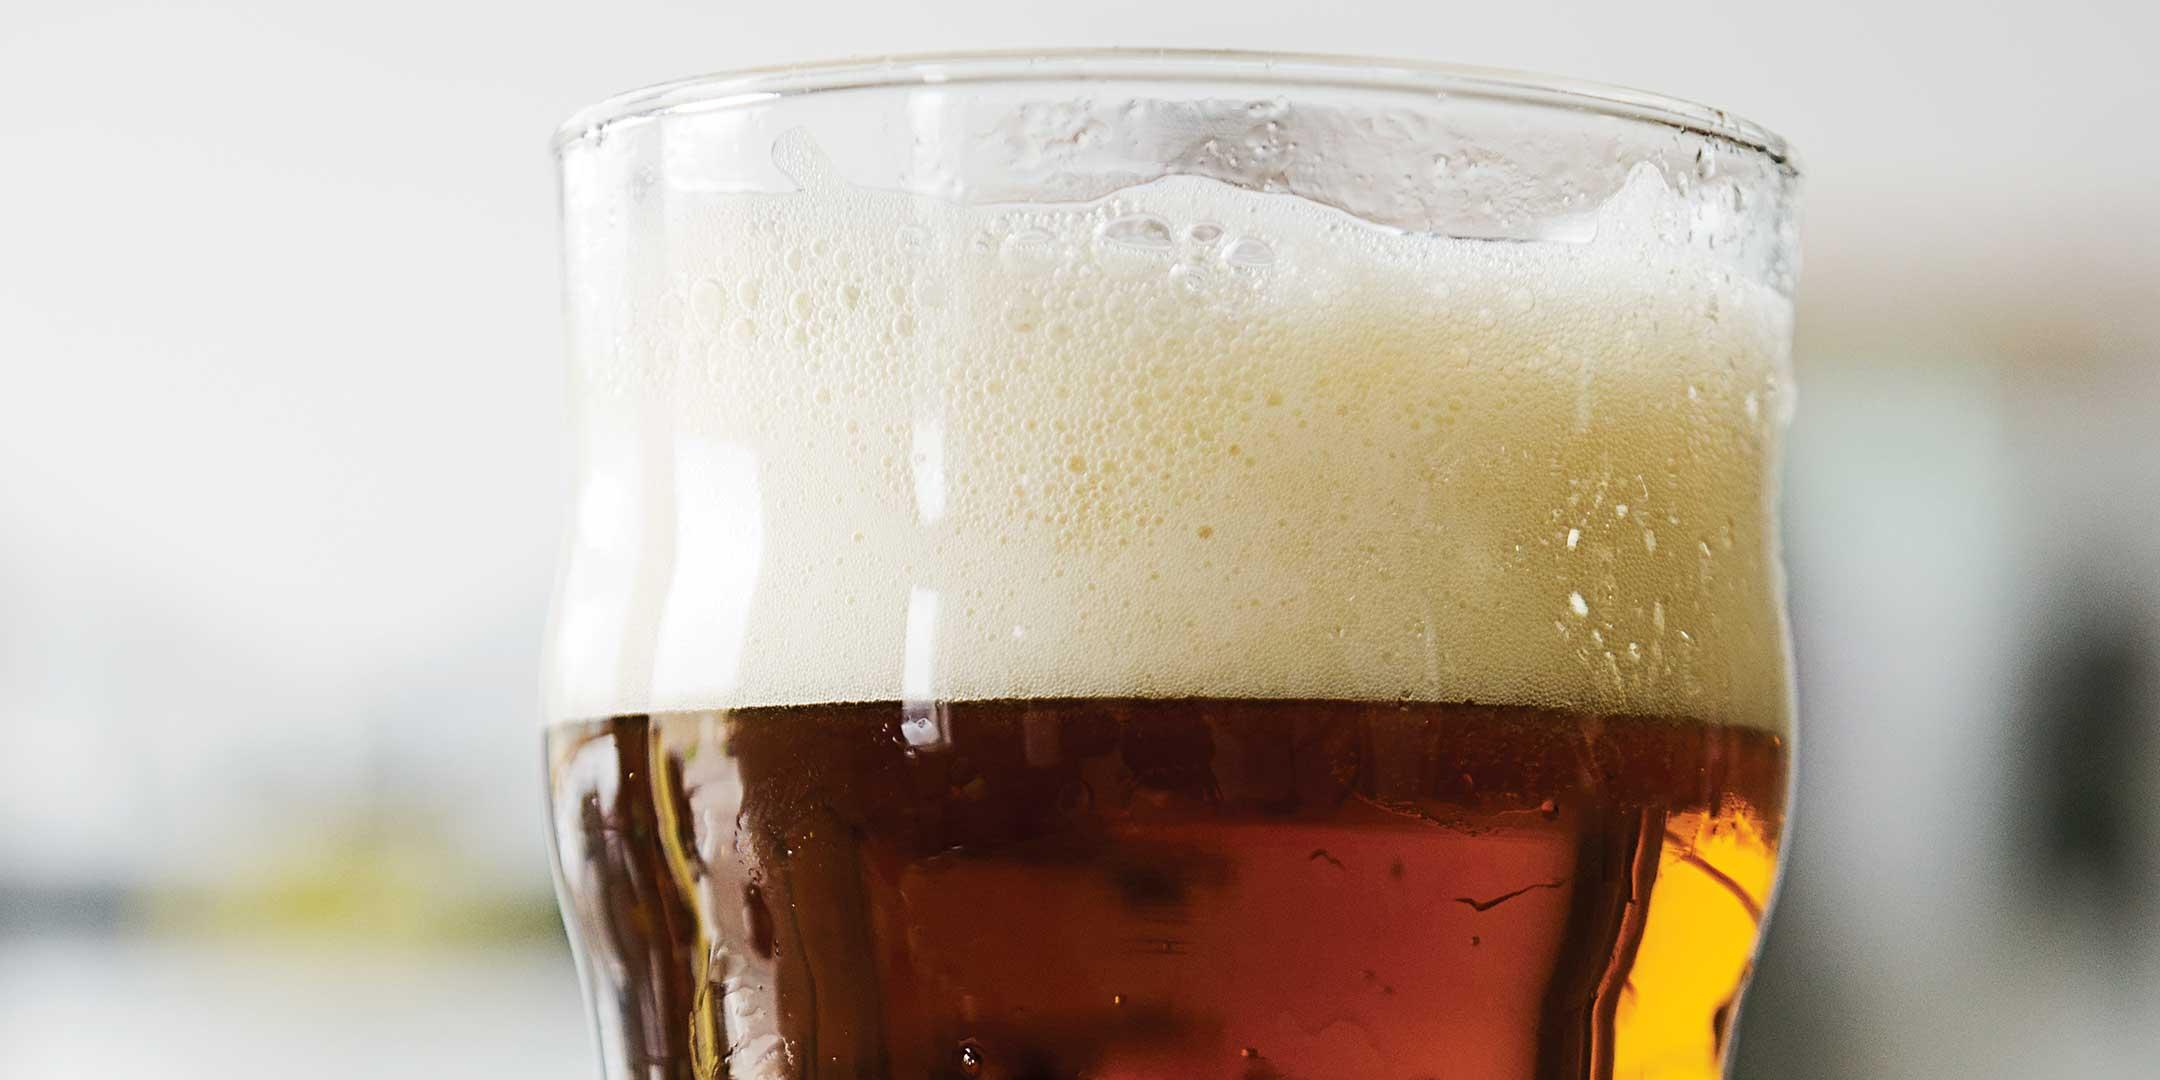 Taste Beer Off-flavors: Train Your Palate